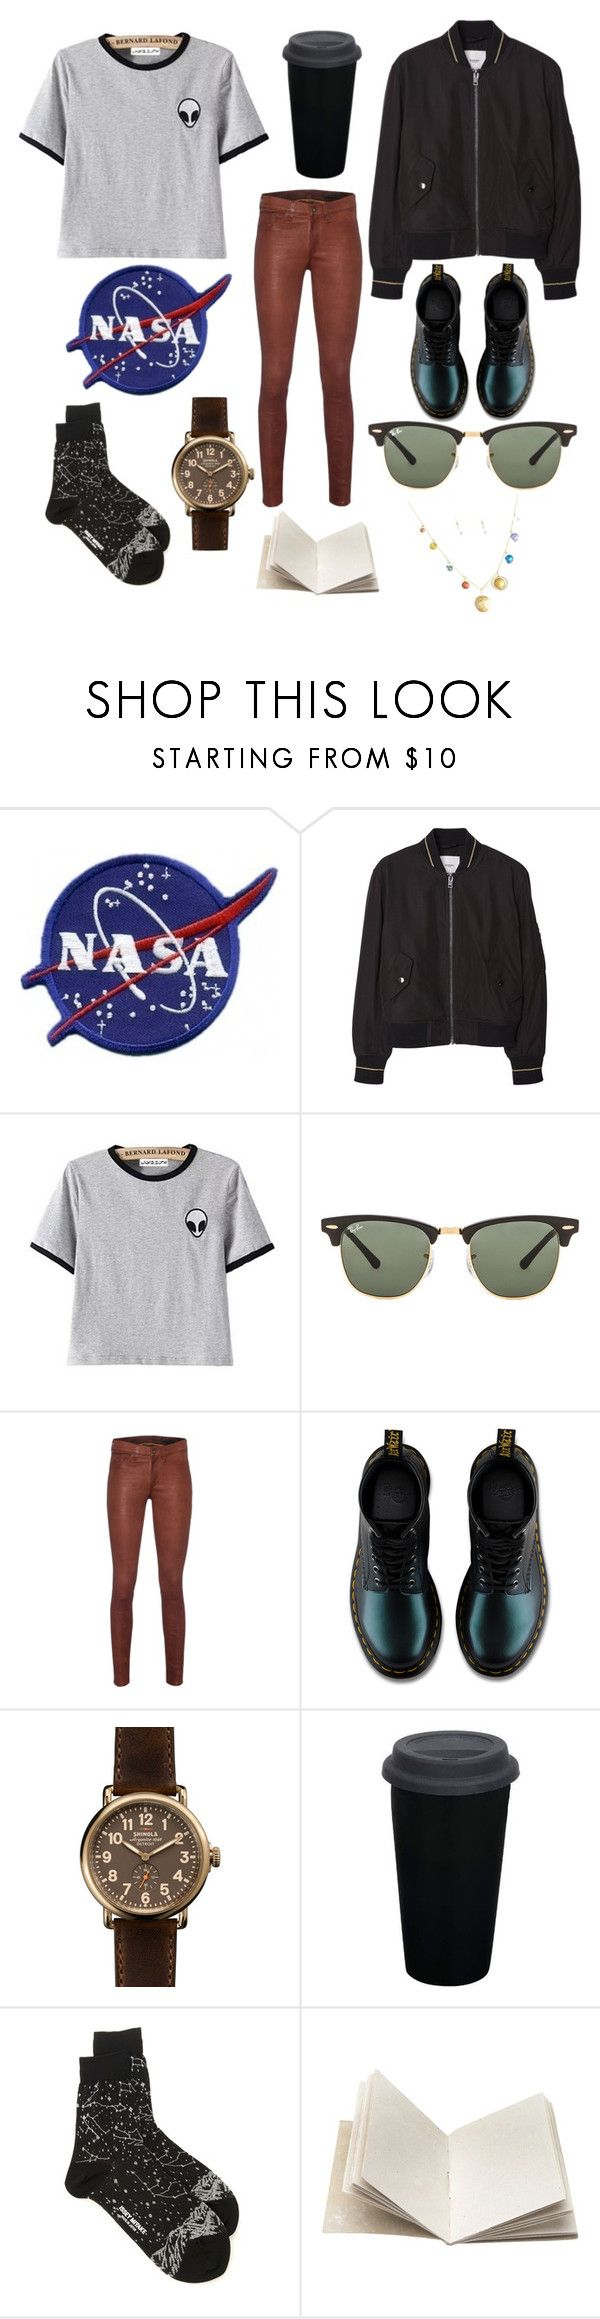 """If I Worked for NASA :)"" by luminous-intensity ❤ liked on Polyvore featuring MANGO, Ray-Ban, rag & bone, Dr. Martens, Shinola, Issey Miyake and Dosa"